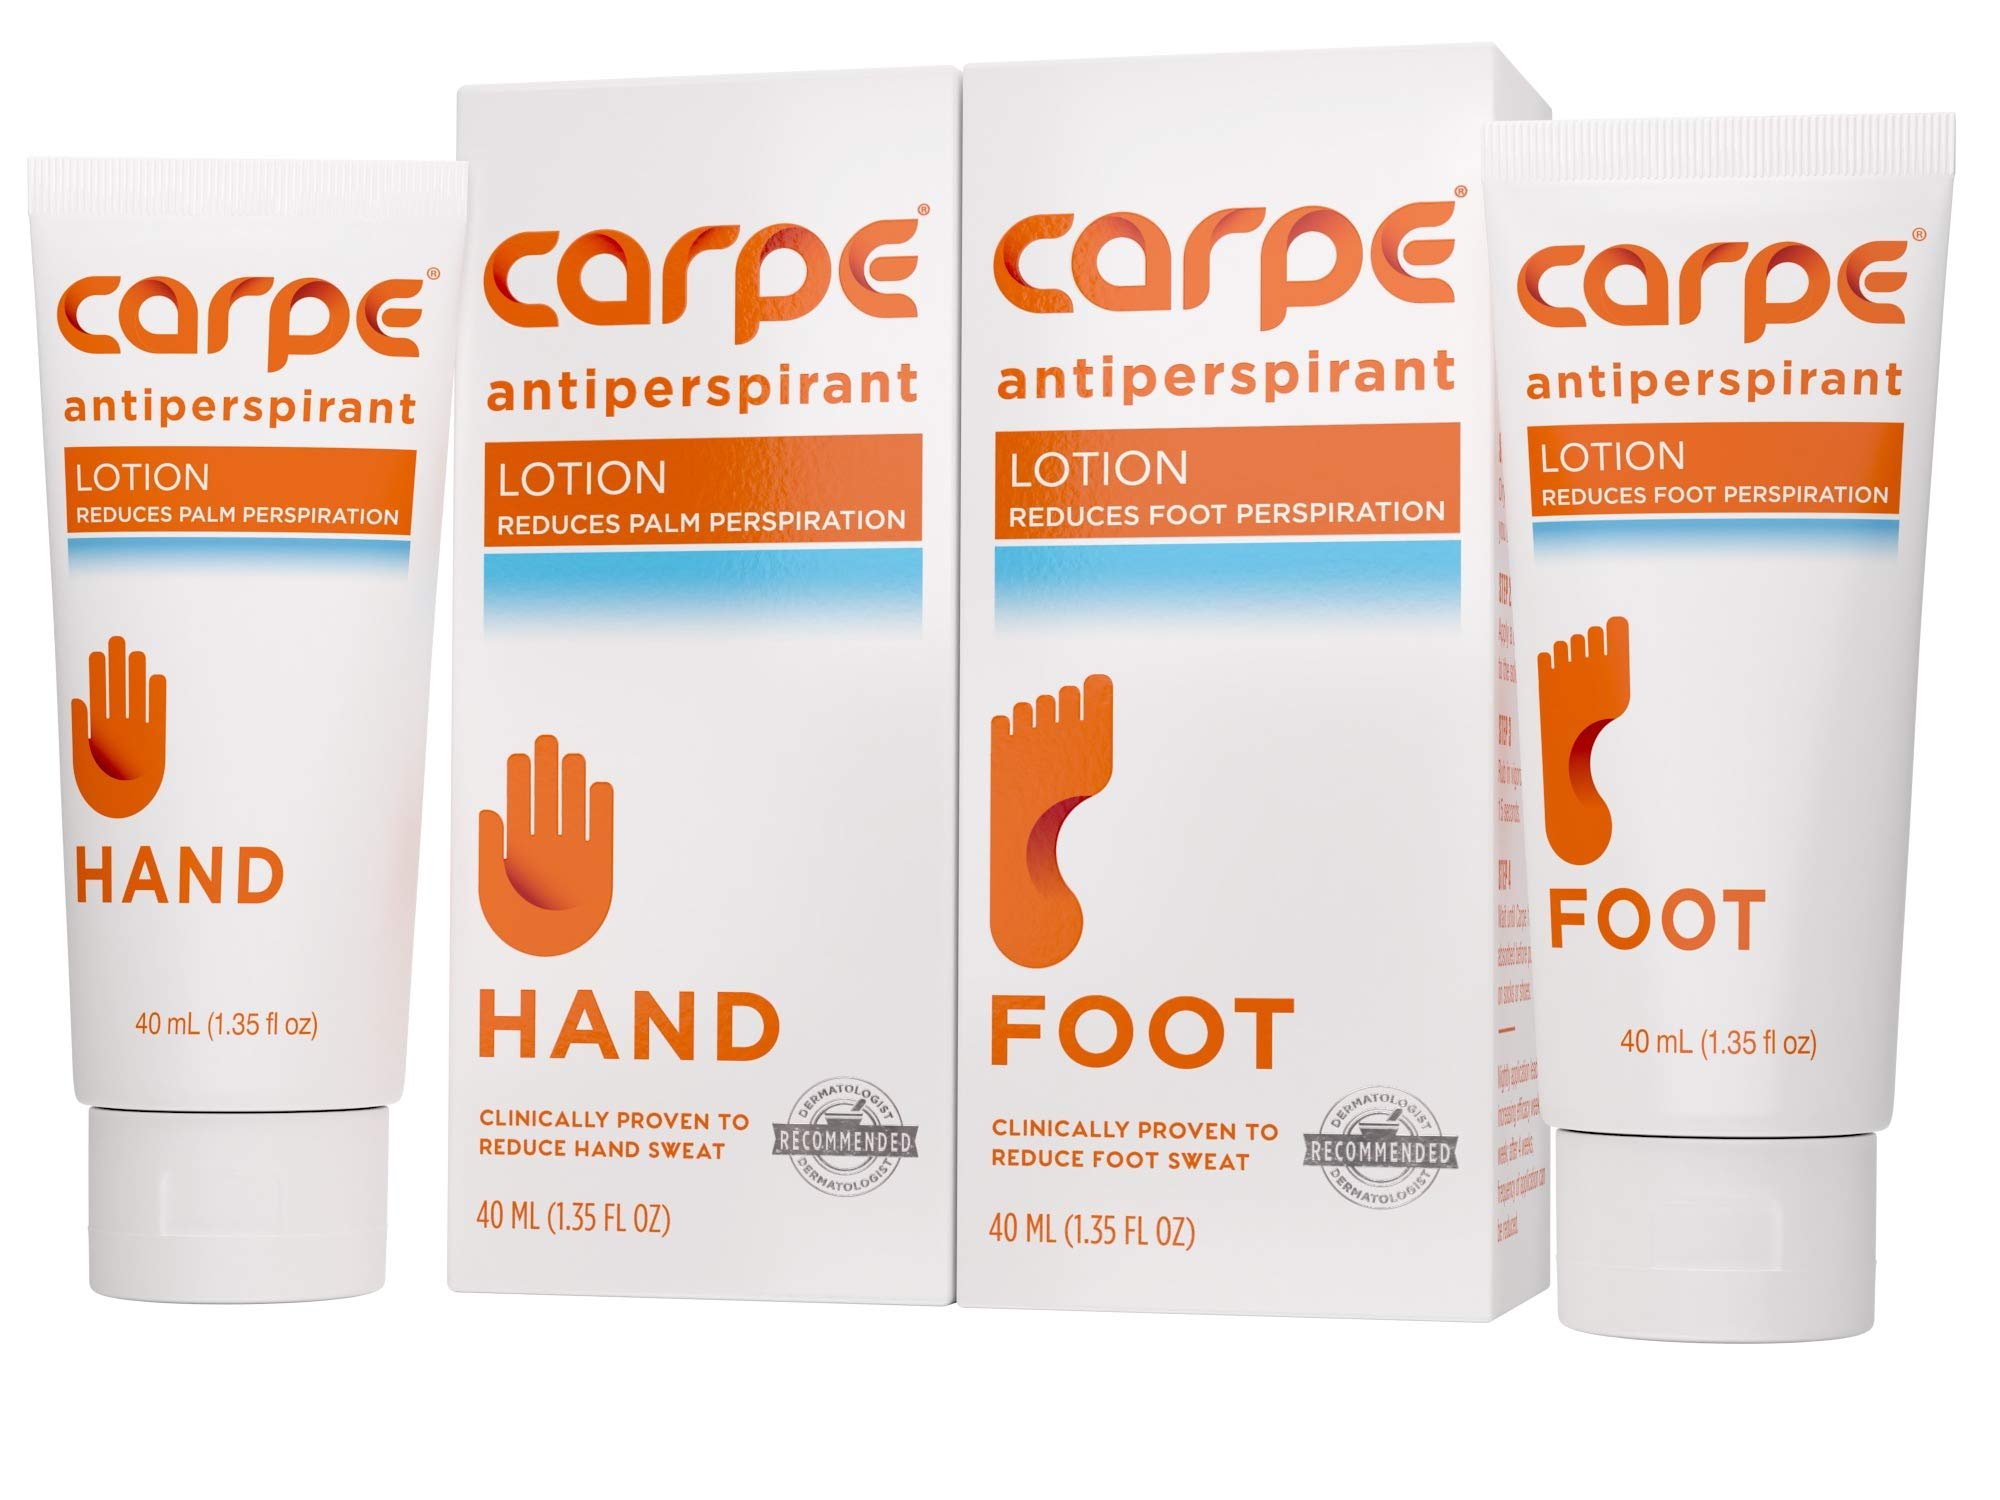 Carpe Antiperspirant Hand and Foot Lotion Package Deal (1 Hand and 1 Foot Tube - Save 17%), Stop Sweaty Hands and Sweaty, Smelly Feet, Dermatologist-Recommended, Most-Popular by Carpe